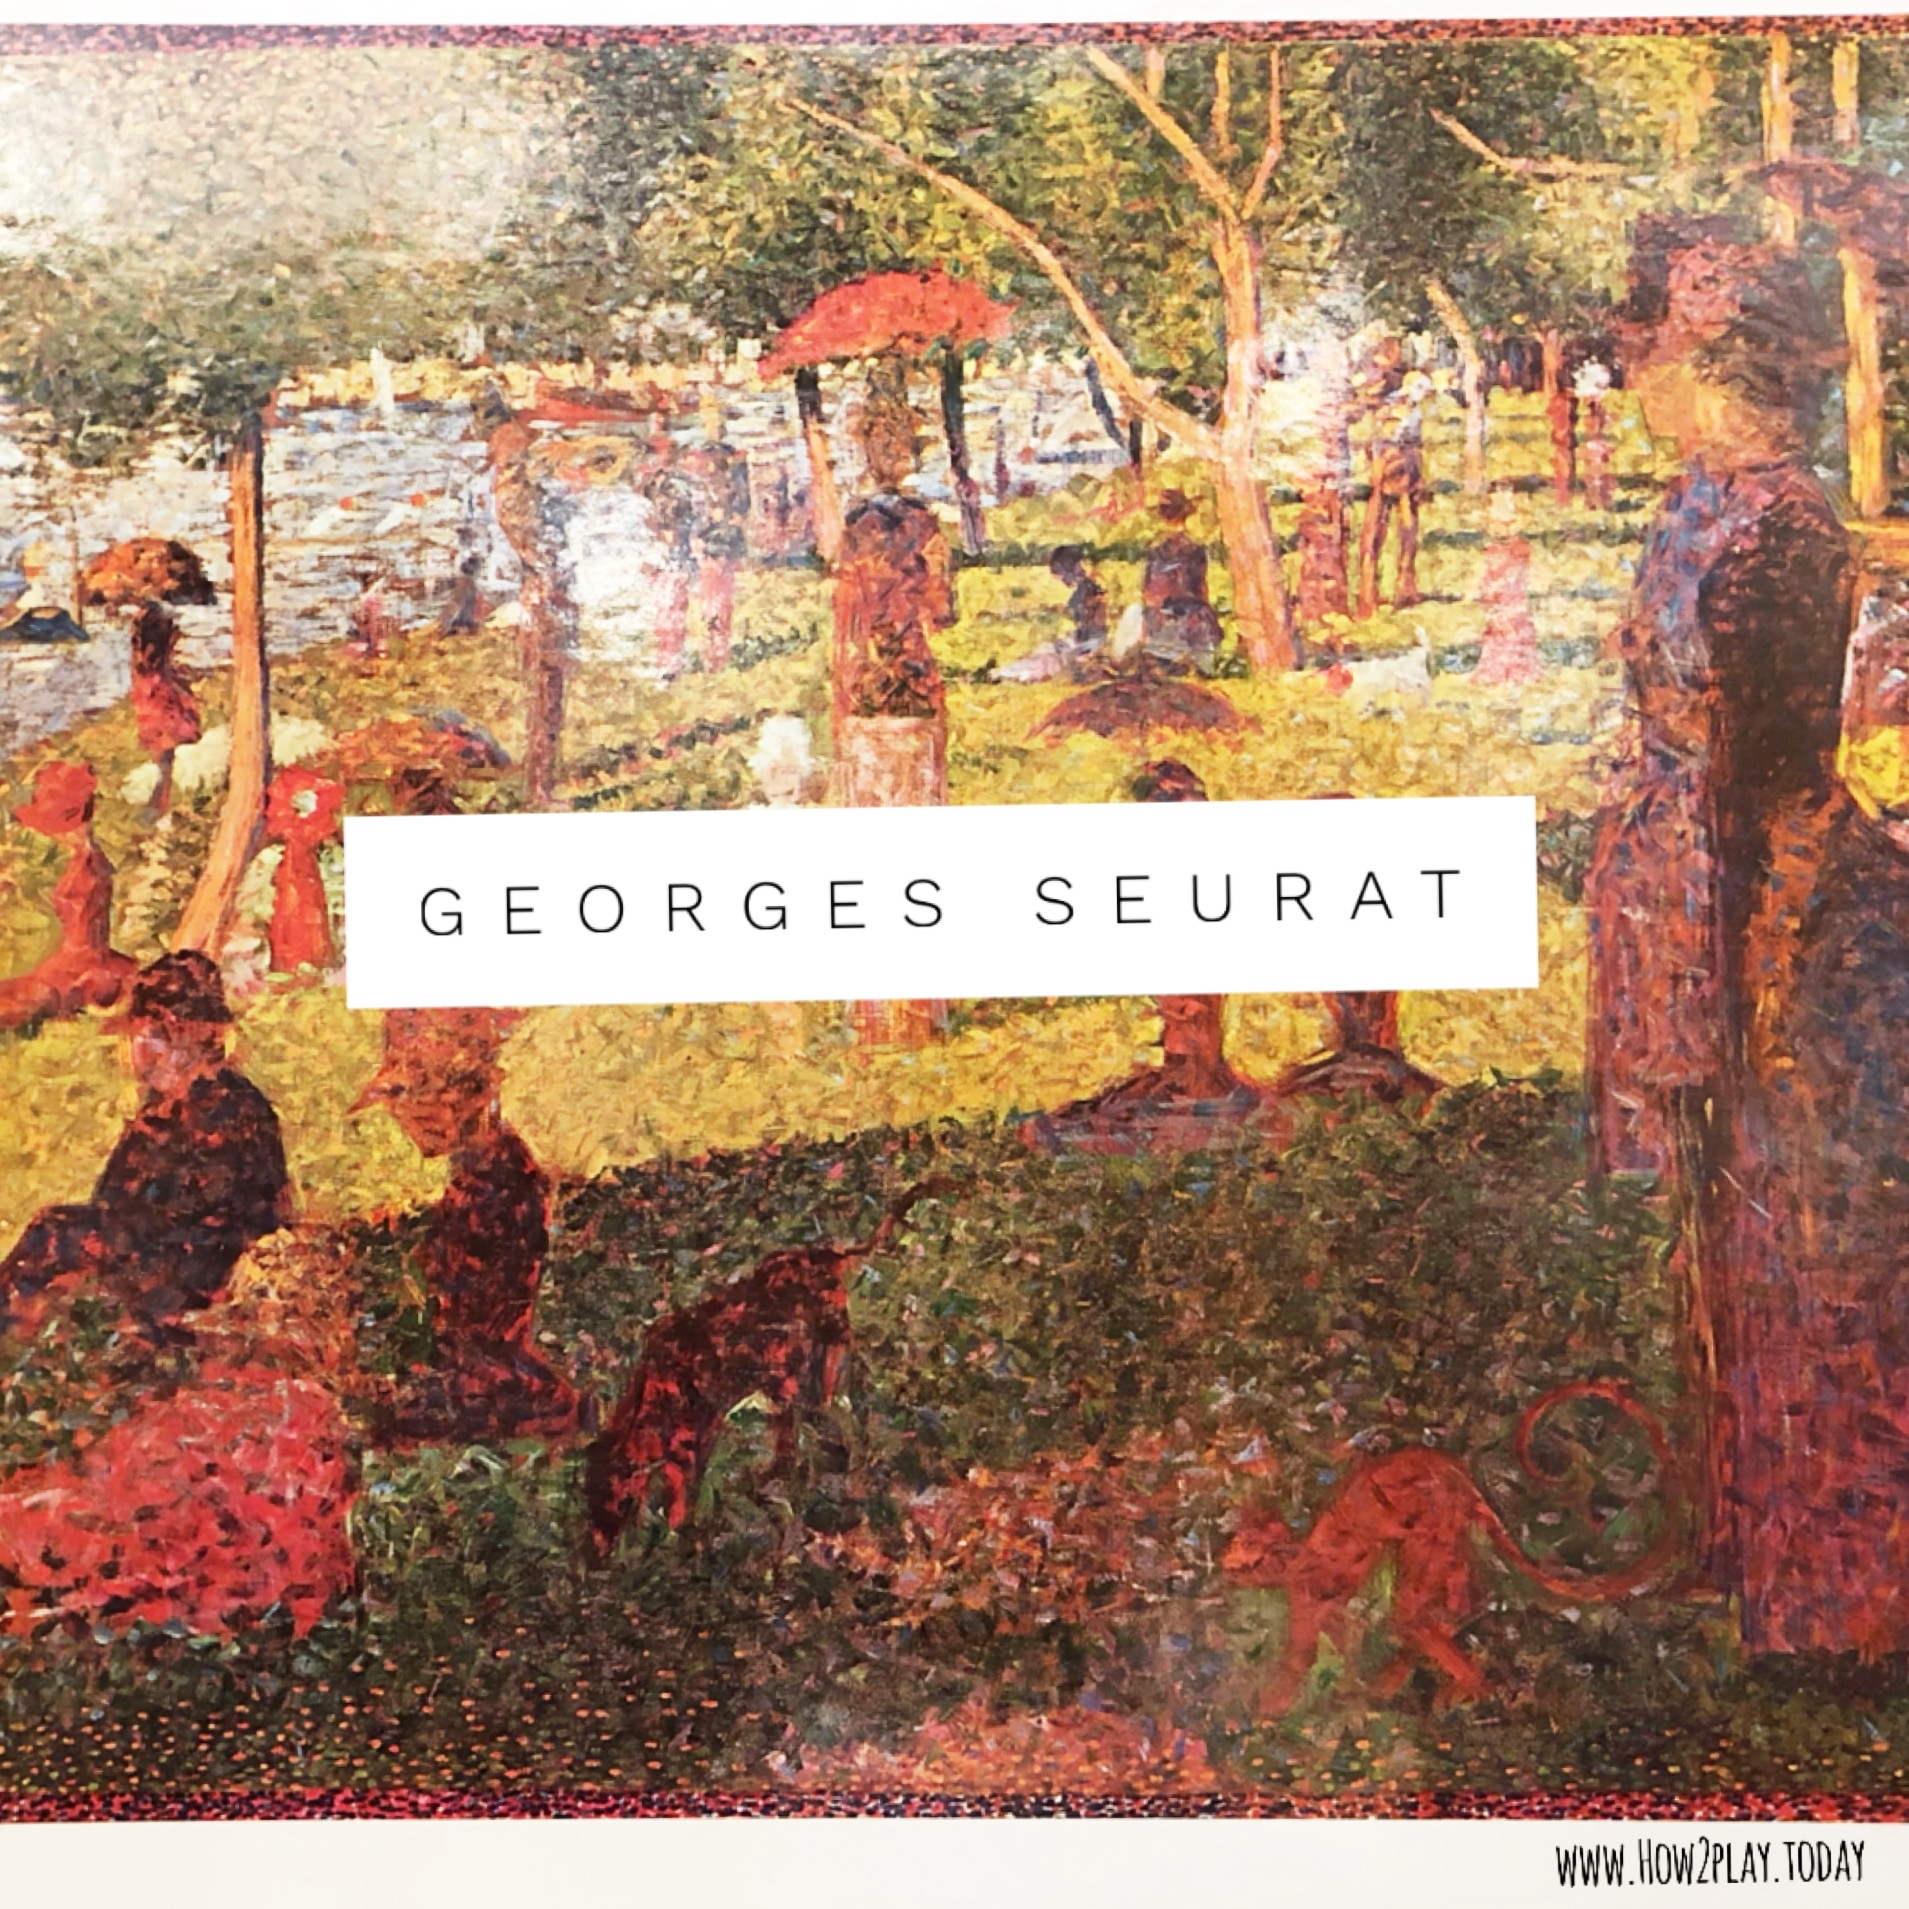 Creating interactive ways to think about Pointillism while learning about Georges Seurat